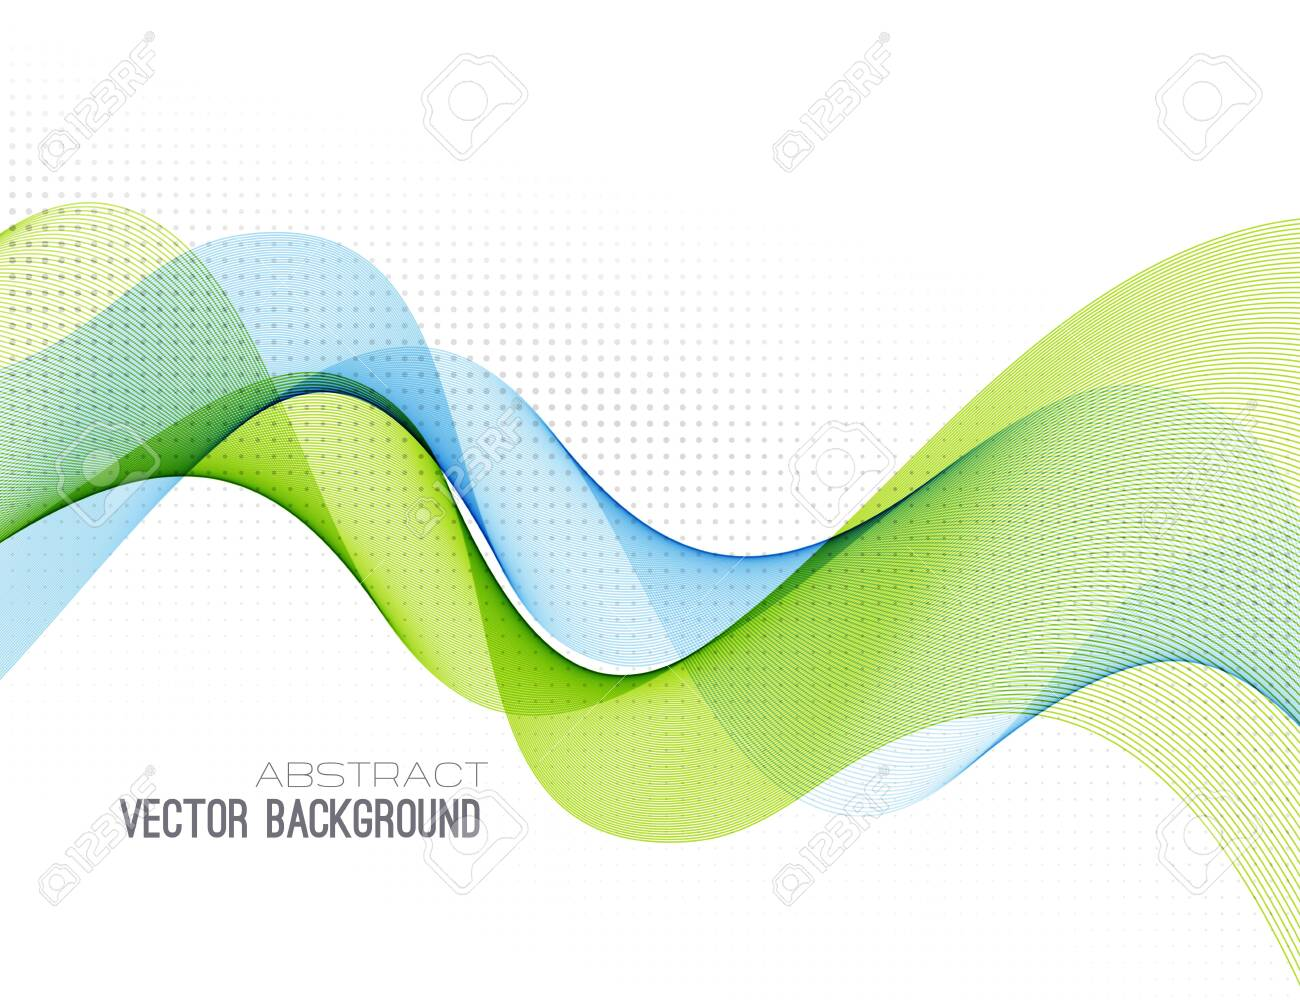 Abstract colorful vector background, color wave for design brochure, website, flyer. - 141122382